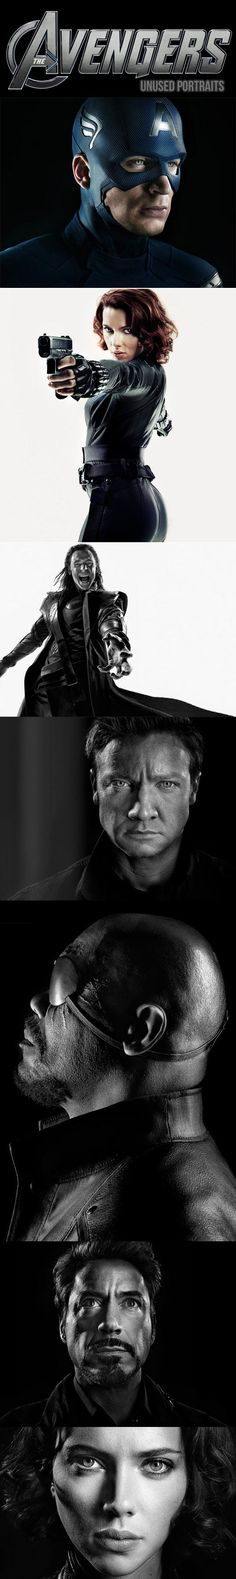 Funny pictures about Awesome Unused Portraits From The Avengers. Oh, and cool pics about Awesome Unused Portraits From The Avengers. Also, Awesome Unused Portraits From The Avengers photos. Marvel Comics, Hq Marvel, Marvel Heroes, Science Fiction, Jeremy Renner, Joss Whedon, Chris Hemsworth, Loki, Robert Downey Jr.